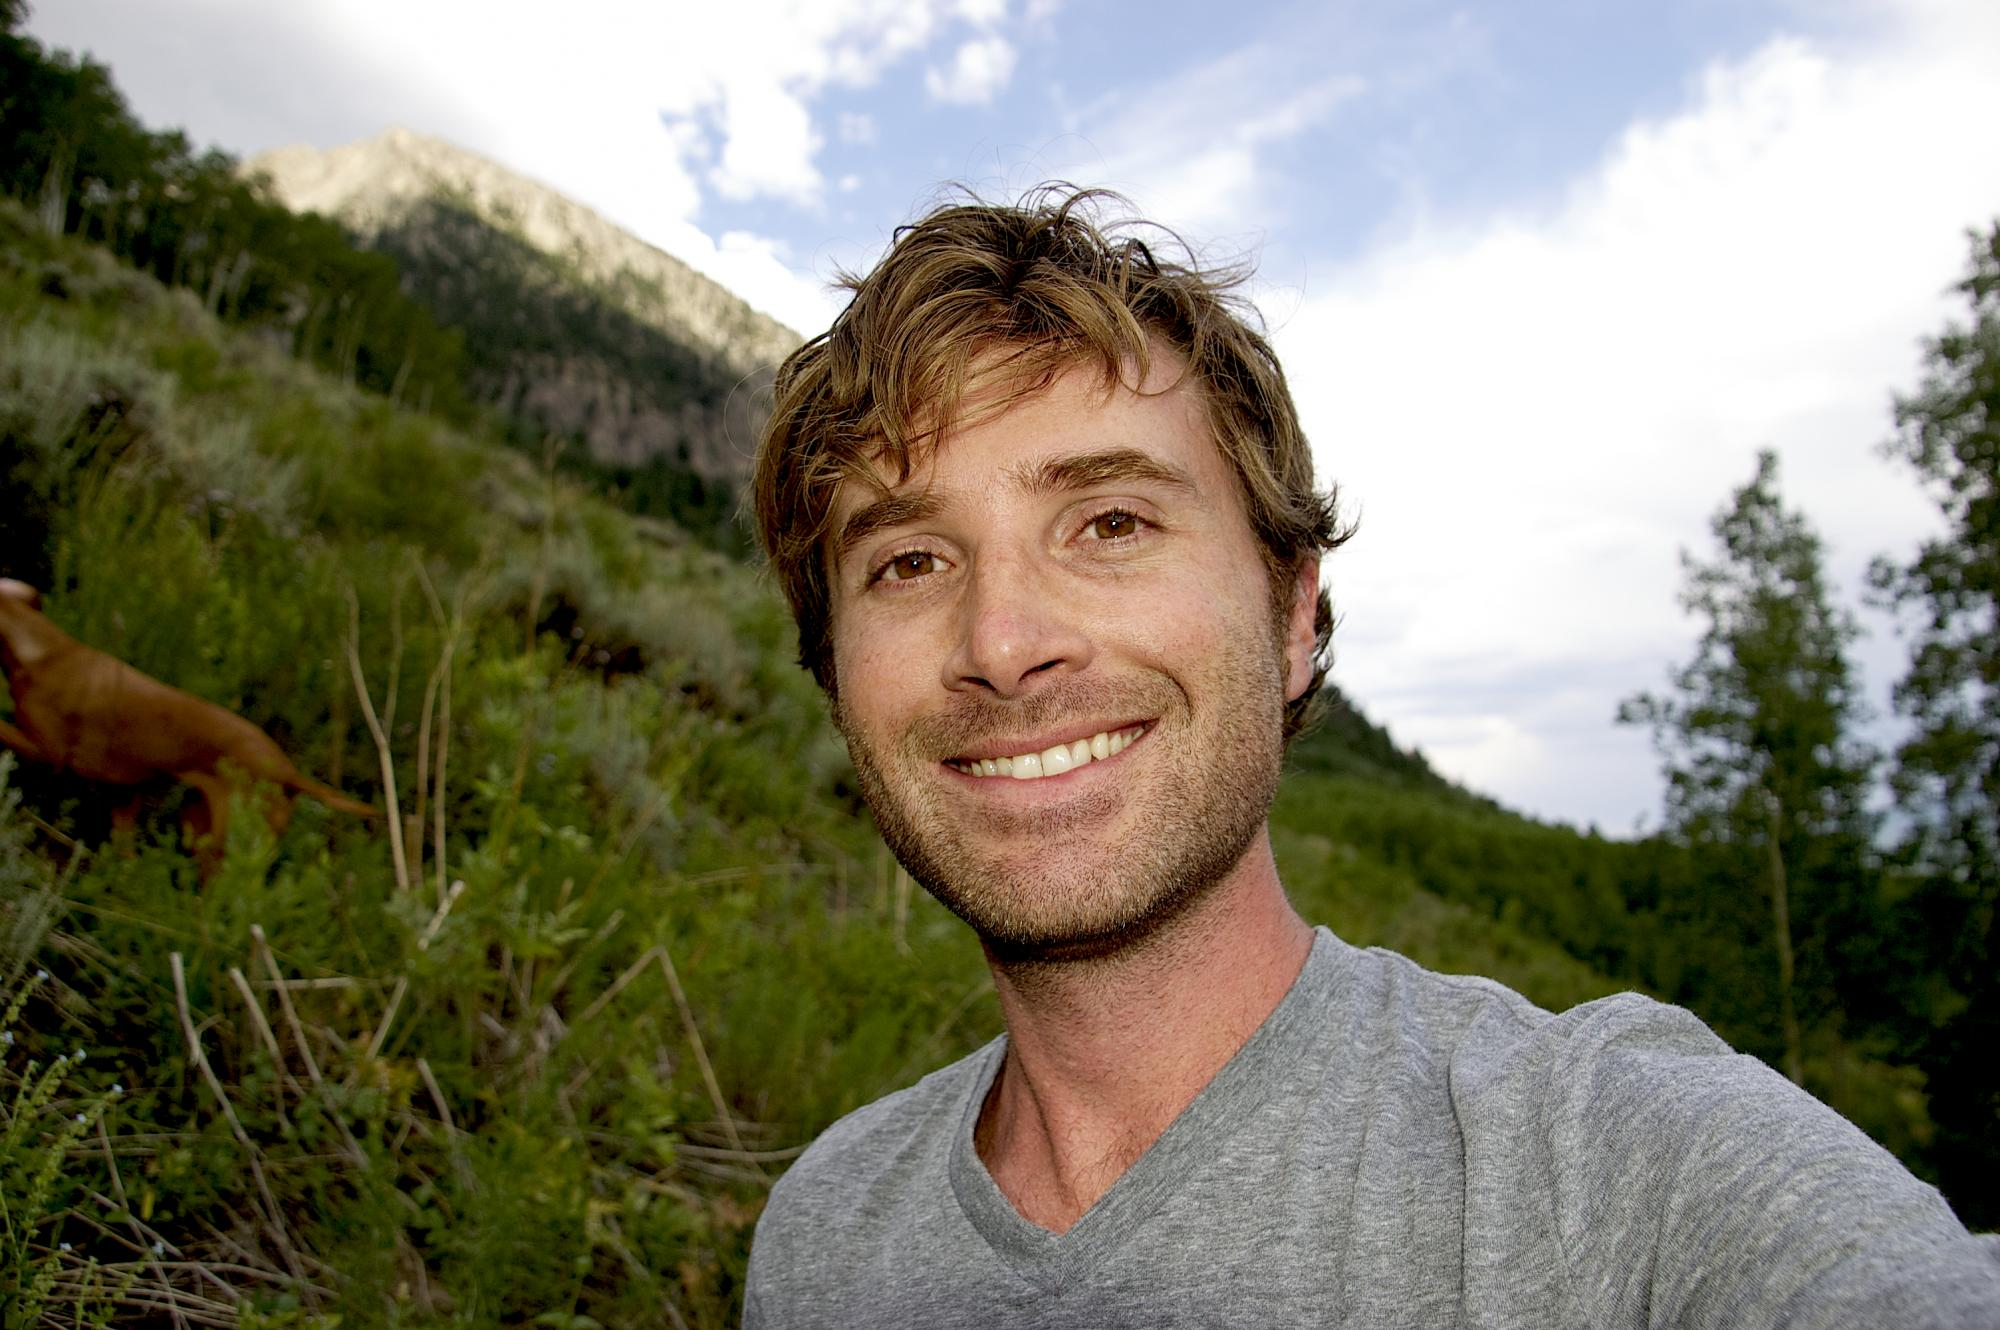 The fly detective: Noah Whiteman, an assistant professor in the UA's department of ecology and evolutionary biology, searches for herbivorous flies atop Mount Crested Butte, Colo.